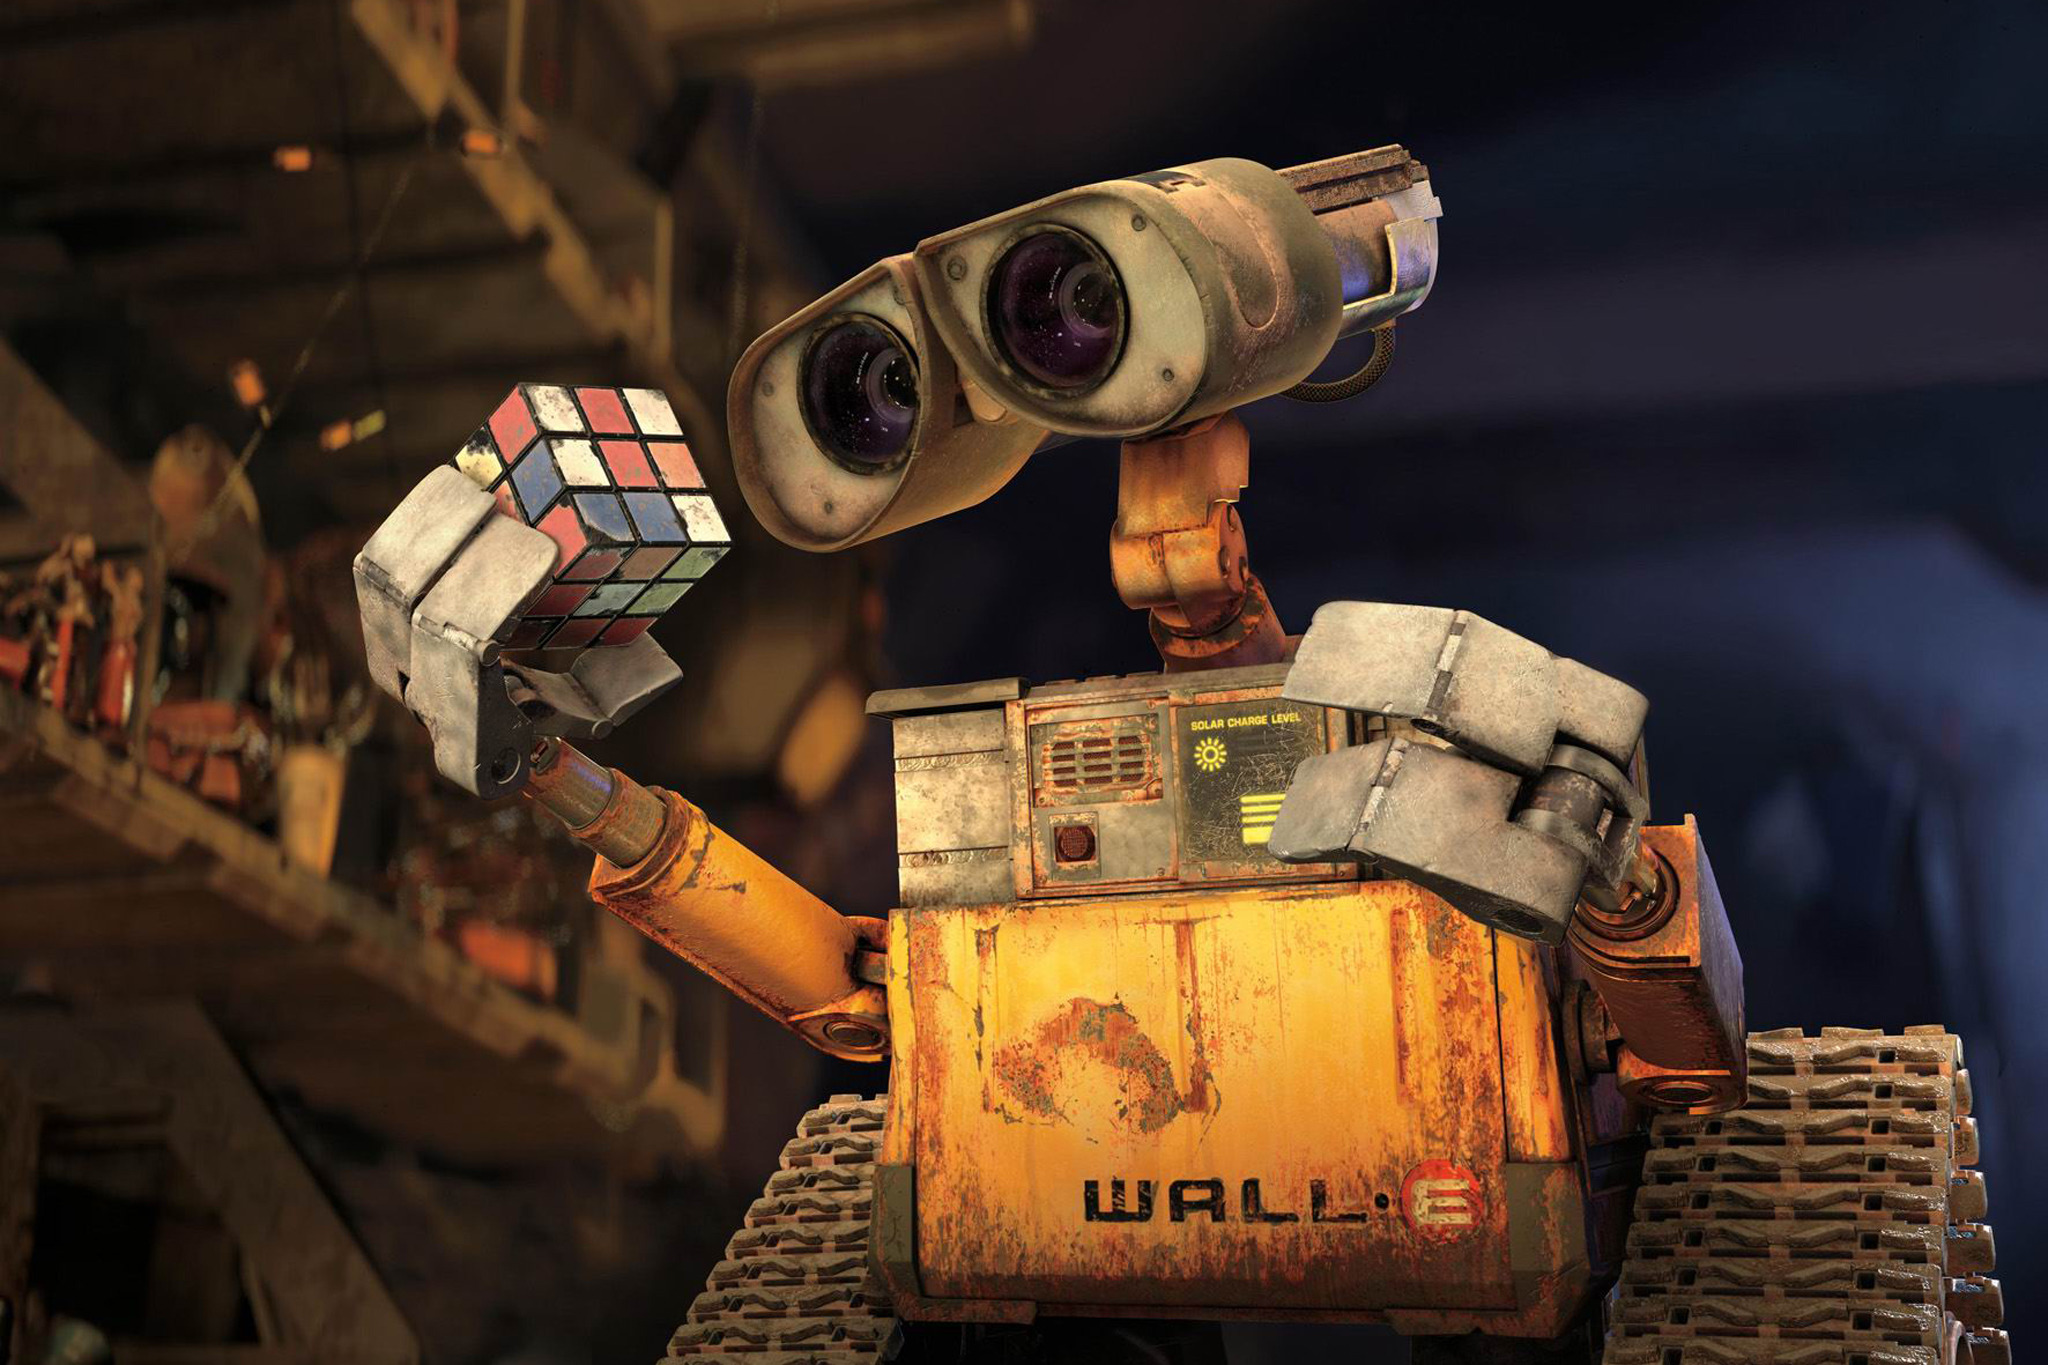 Best Pixar films: WALL·E